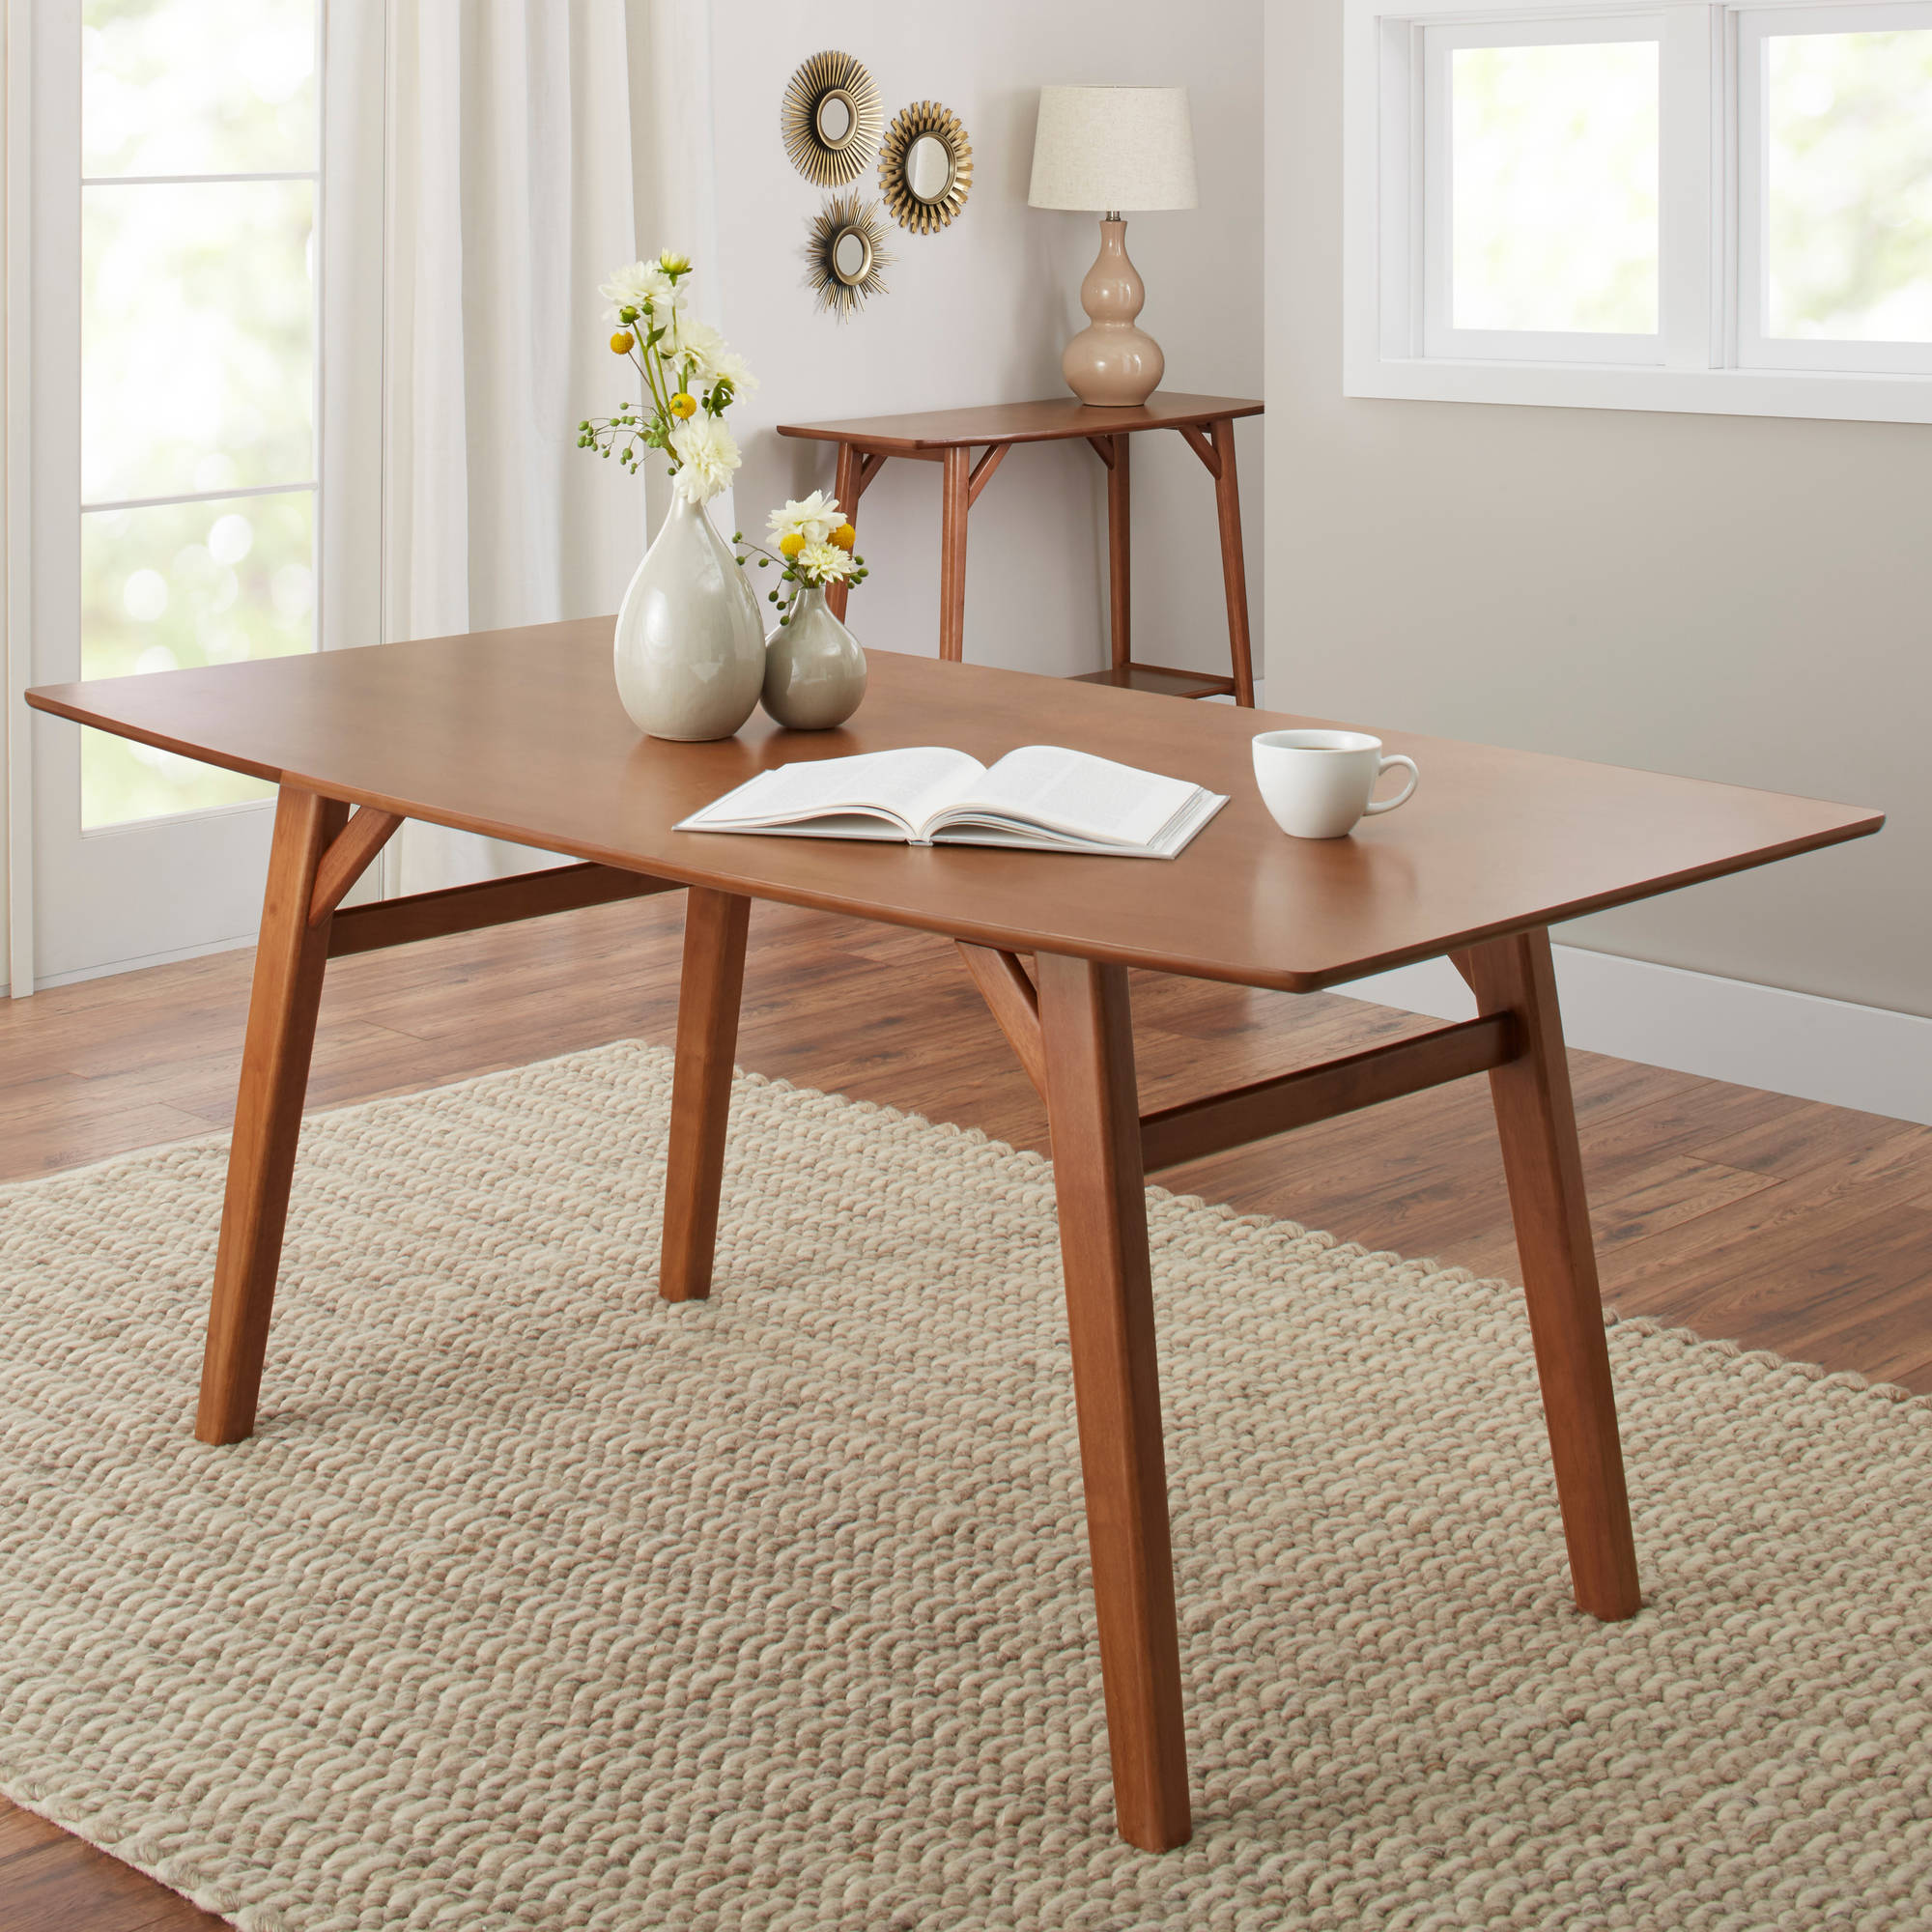 Modern Dining Room Furniture Better Homes Gardens Reed Mid Century Modern Dining Table Pecan